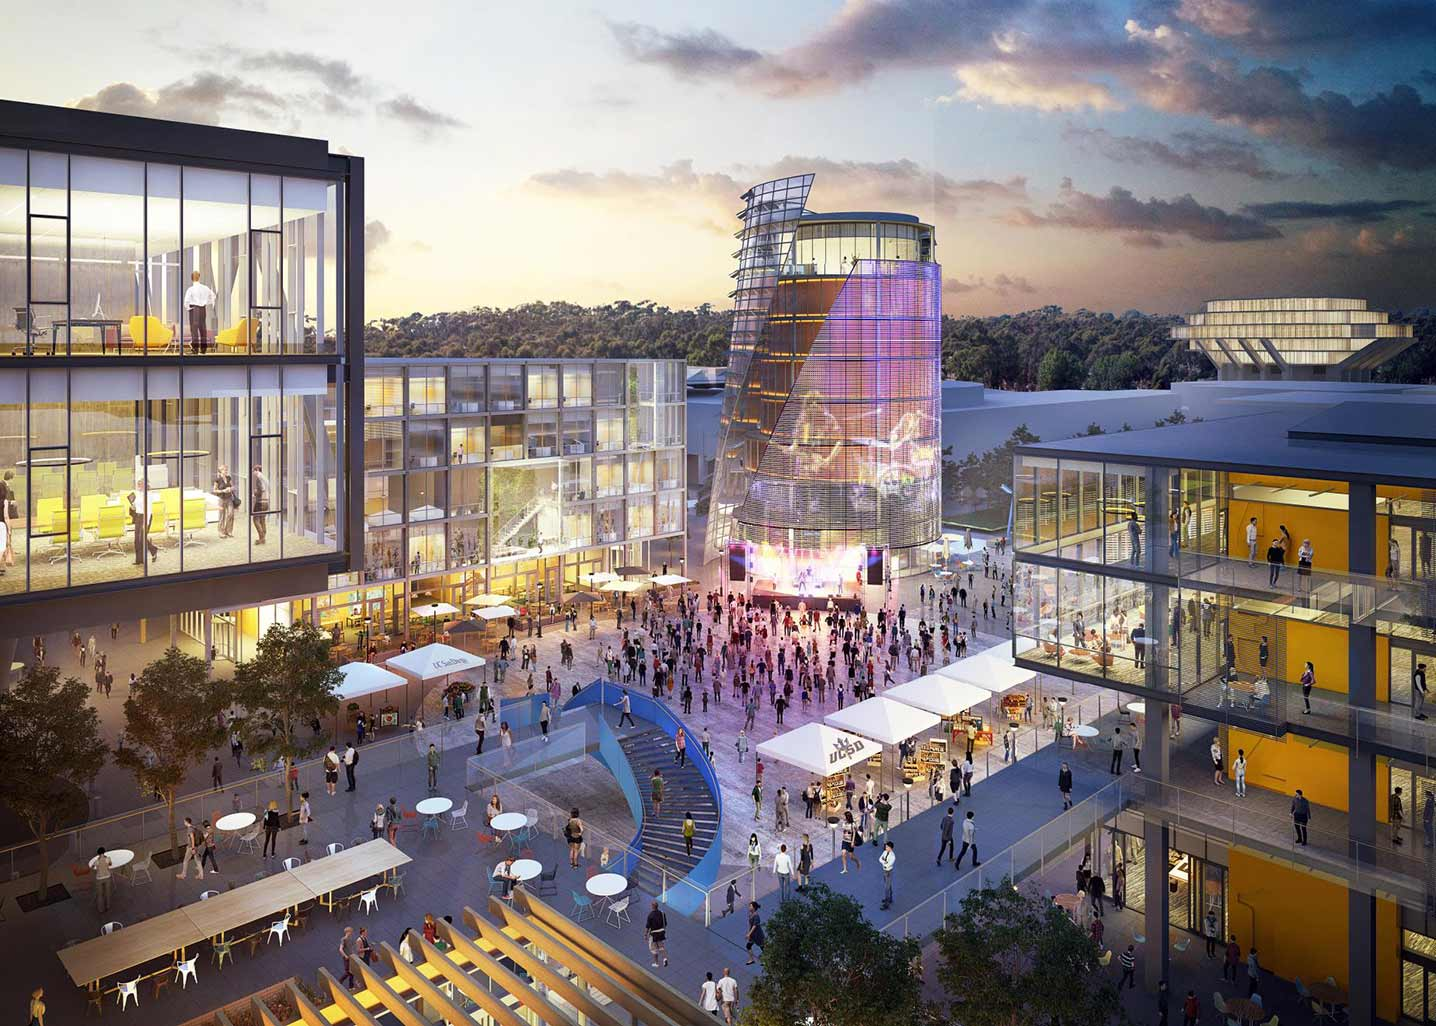 Rendering of campus plaza with colorfully-lit buildings in the evening, and a conical tower at the center